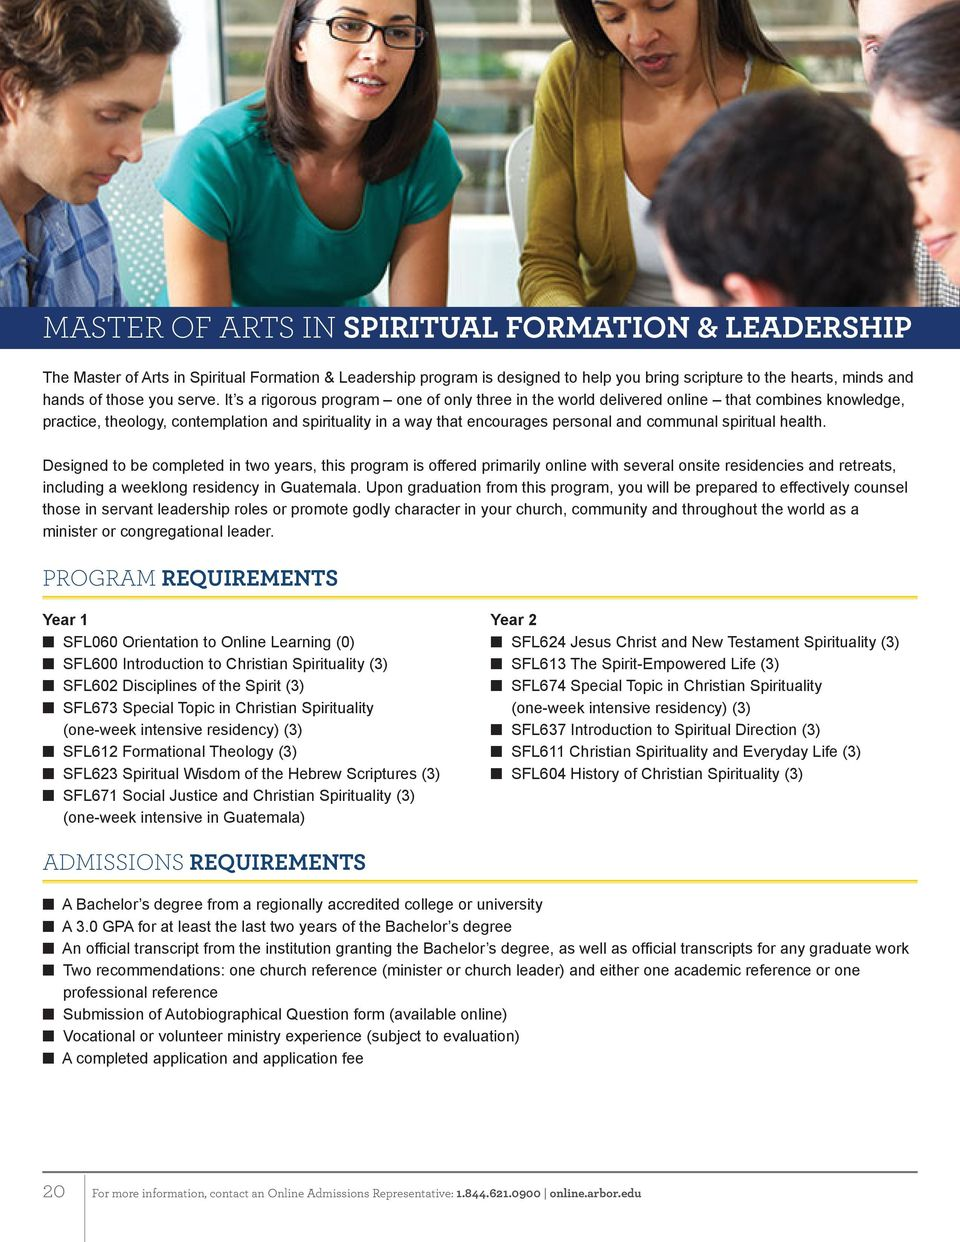 It s a rigorous program one of only three in the world delivered online that combines knowledge, practice, theology, contemplation and spirituality in a way that encourages personal and communal